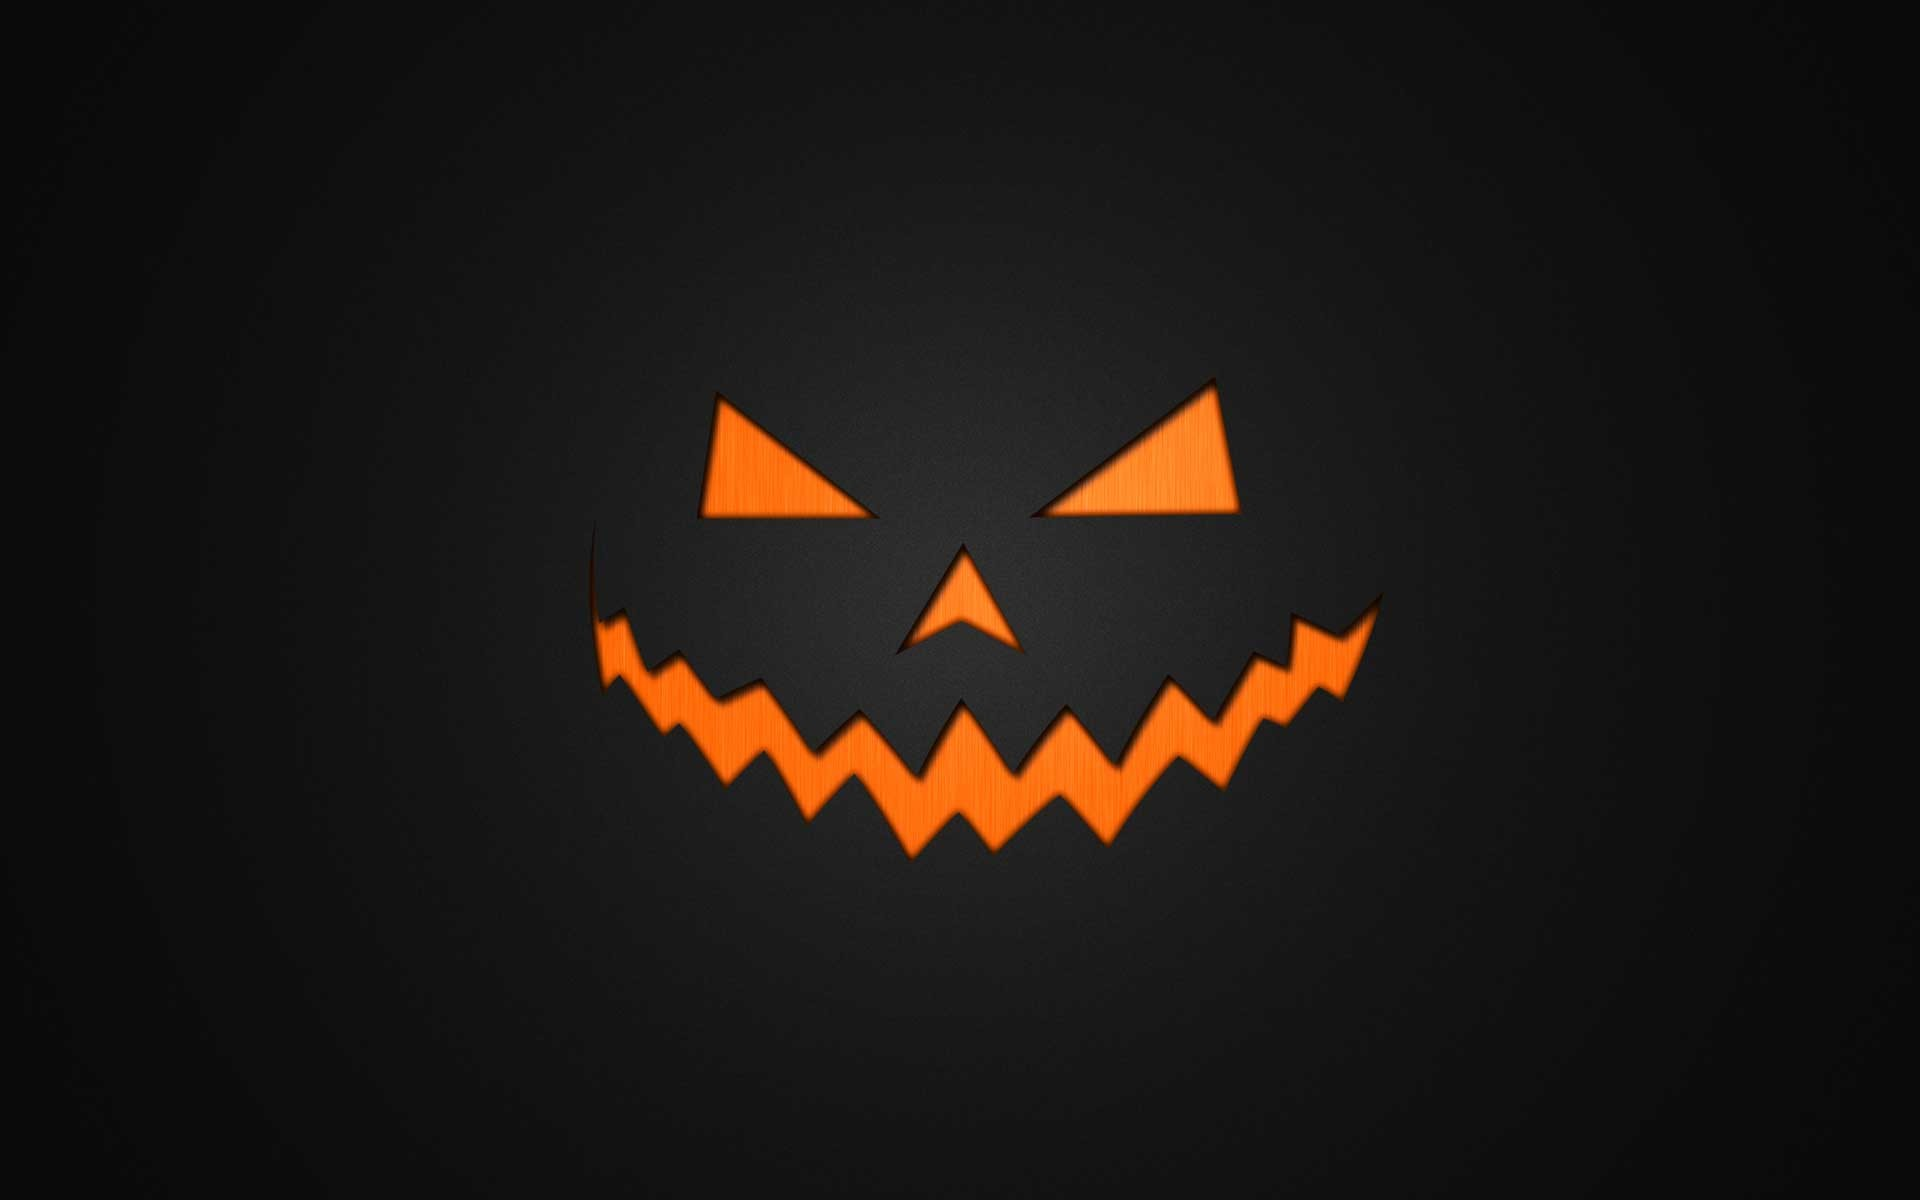 2880x1800 pictures download halloween wallpaper desktop wallpapers high definition monitor download free amazing background photos artwork 2880×1800 ...